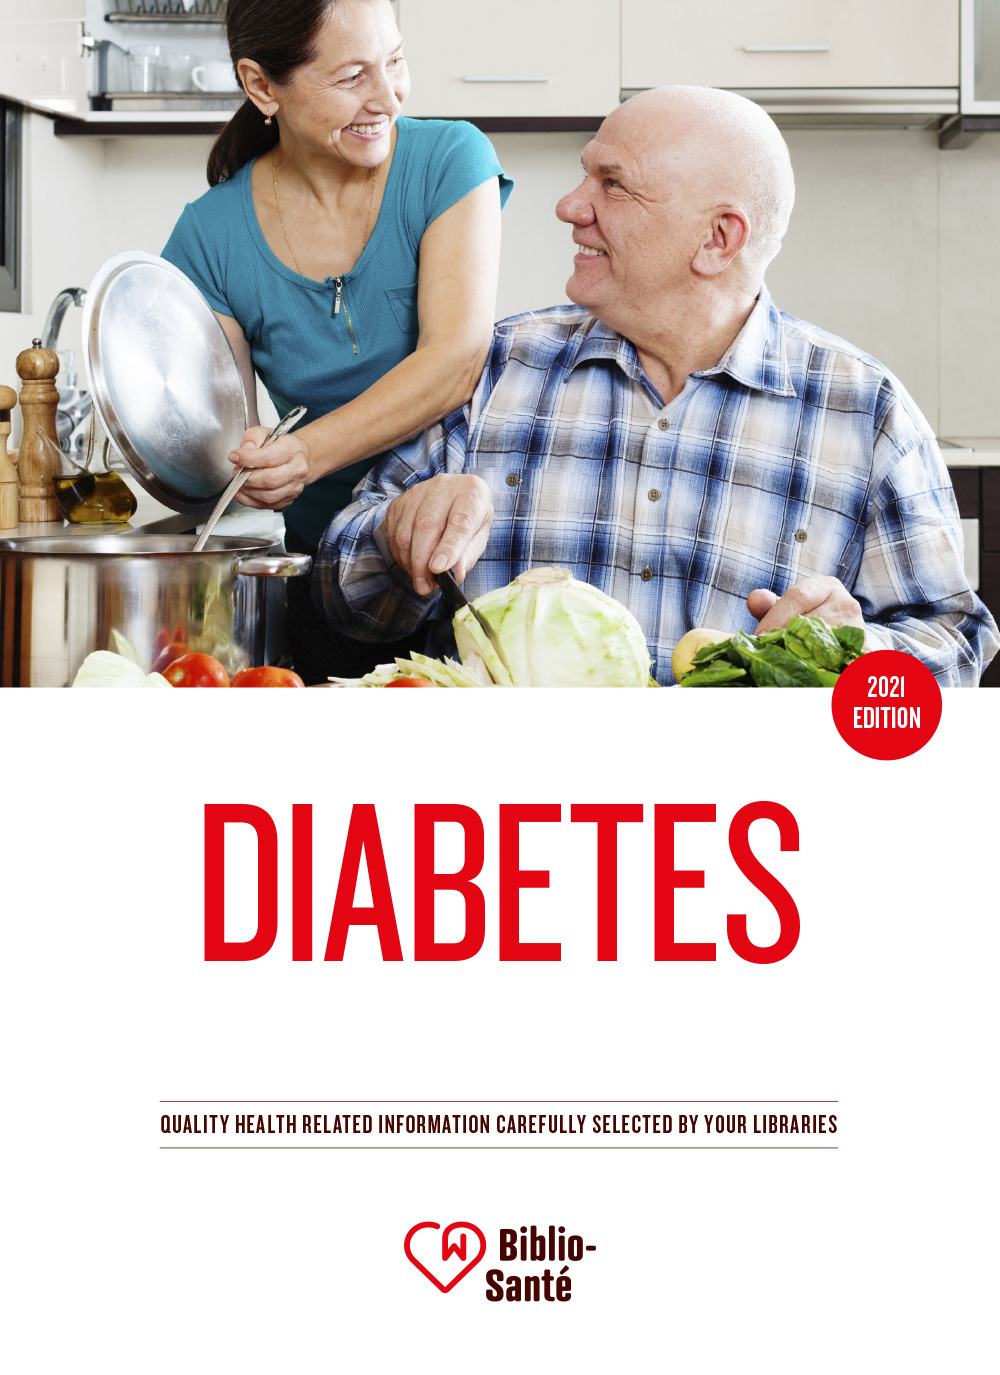 Diabetes booklet